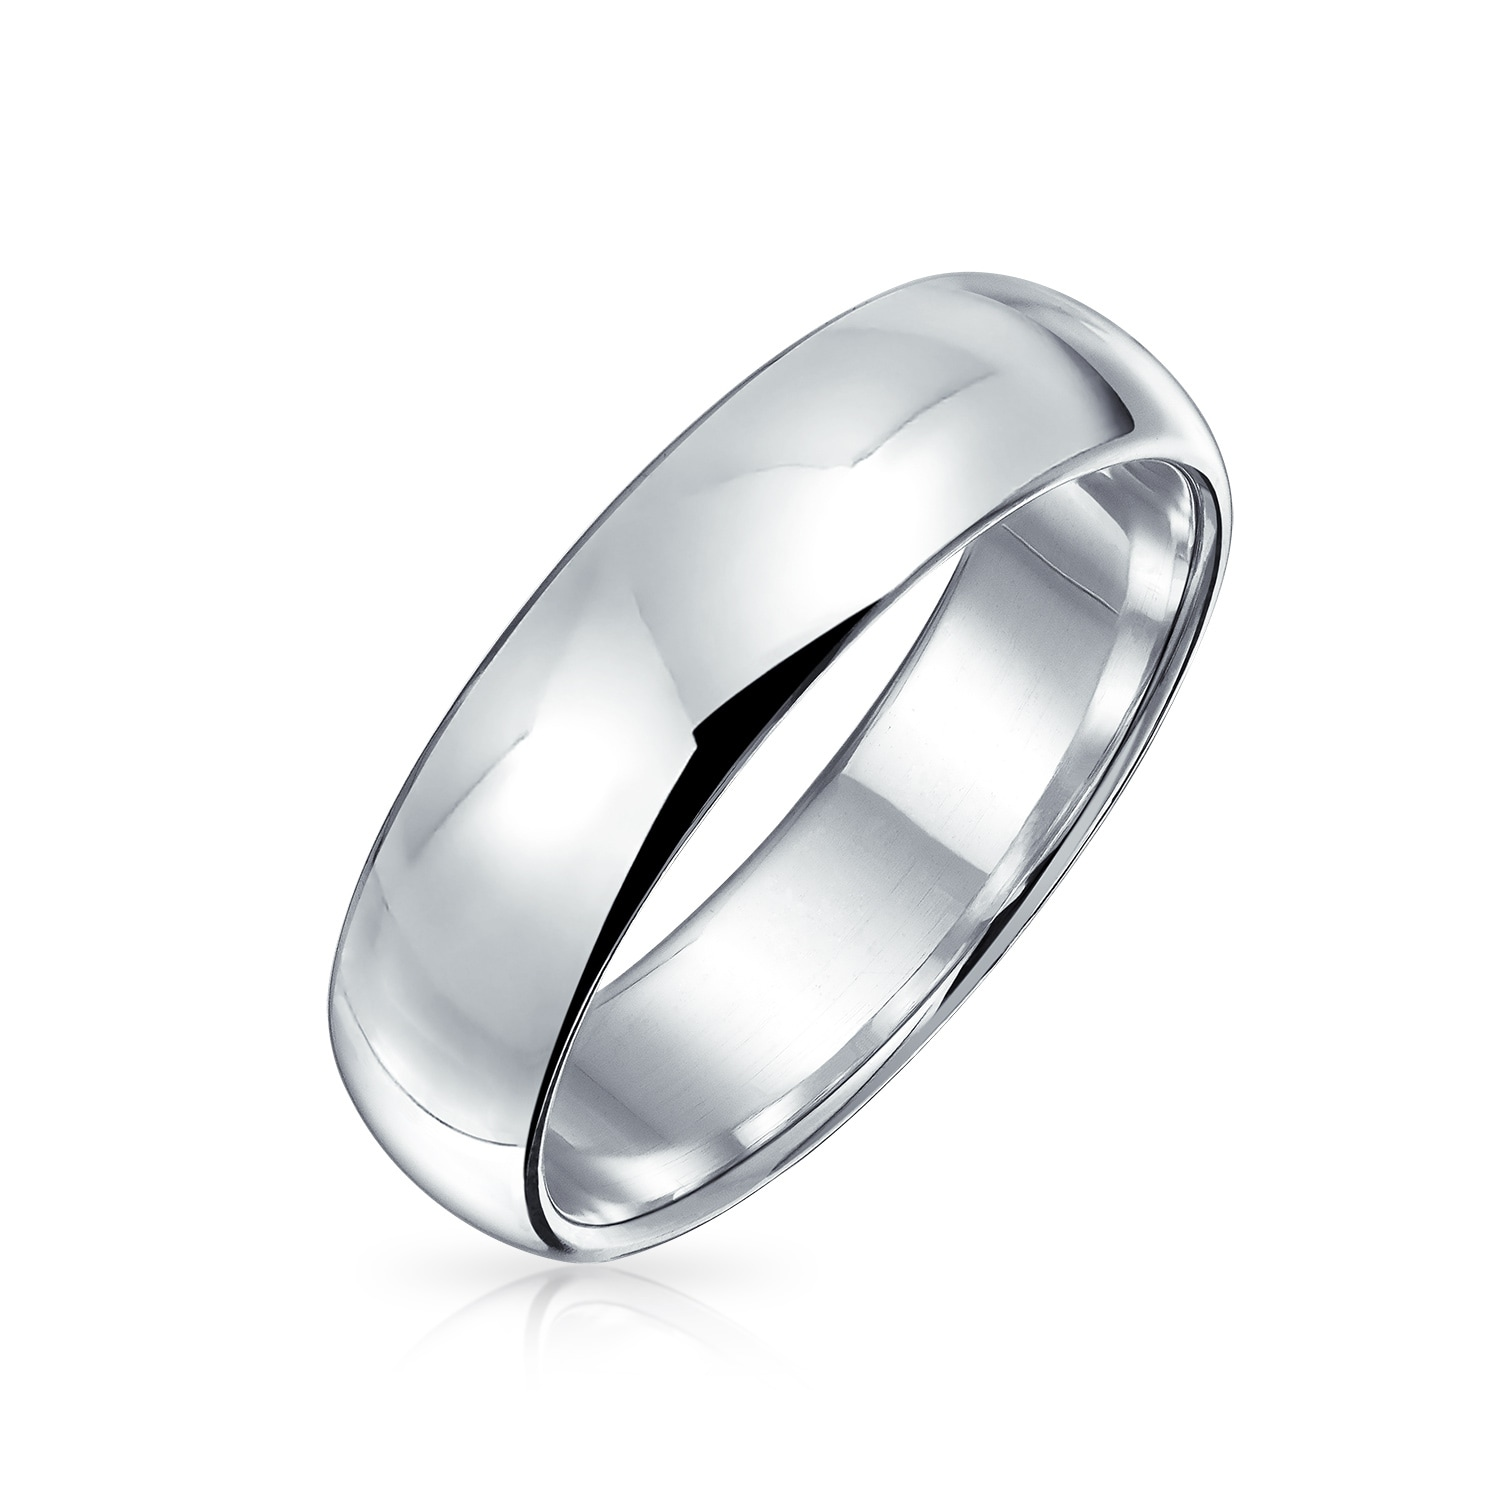 It is just an image of Plain Simple 48 Sterling Silver Dome Couples Wedding Band Ring 48MM